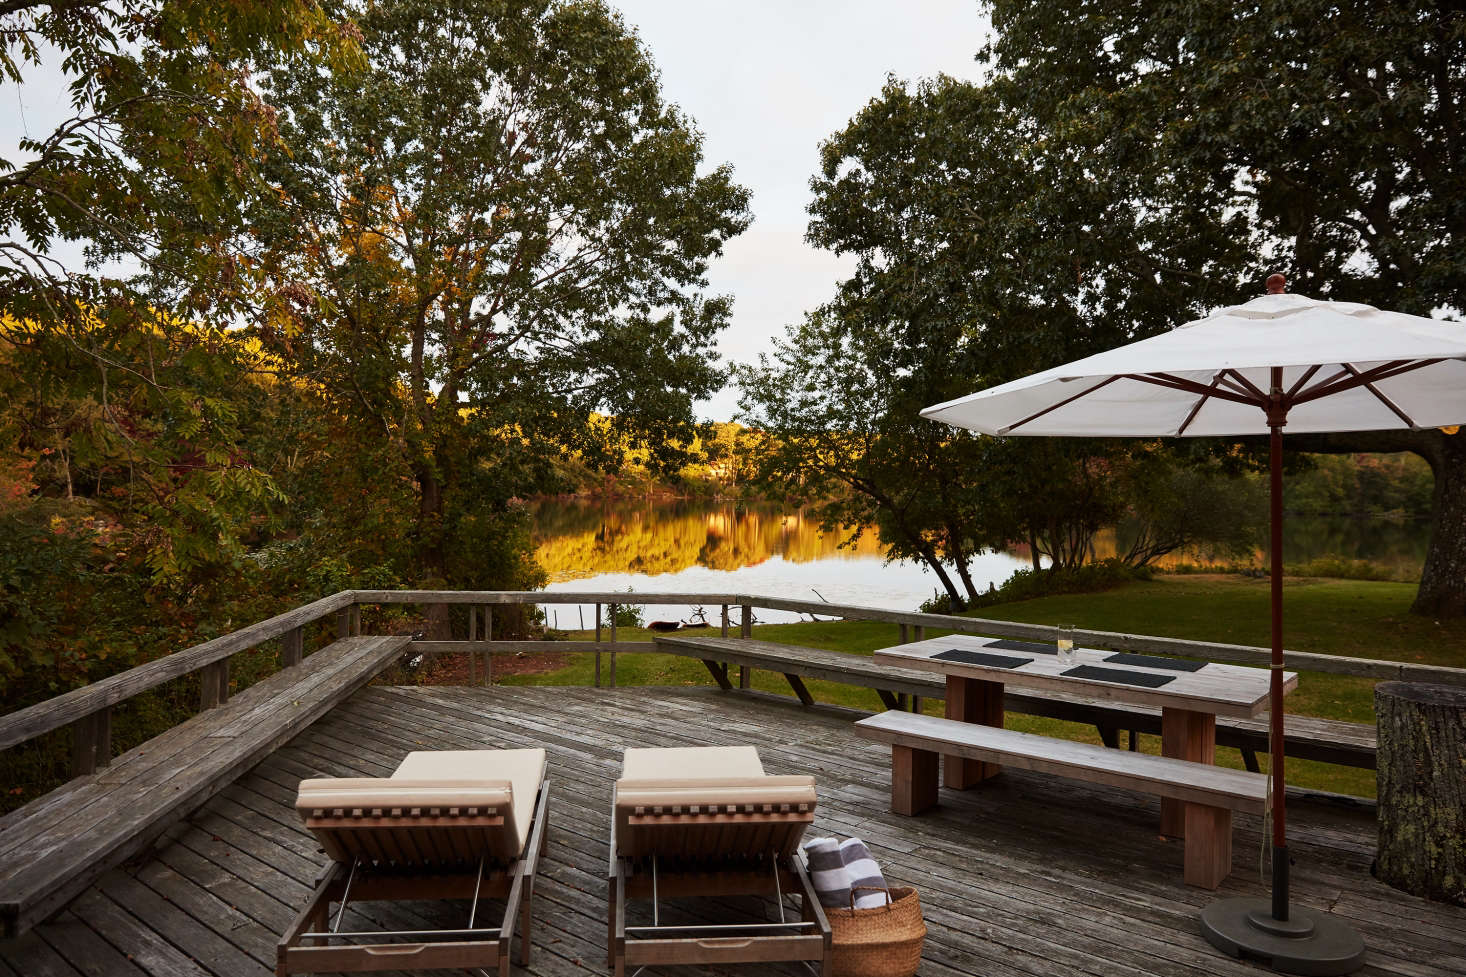 Jones kept the original weathered deck overlooking the lake, but added a two cream chaises from Skagerak (a similar option is available here), and a Vietnamese rice basket, ideal for carrying lakeside essentials, from Lantern Moon.